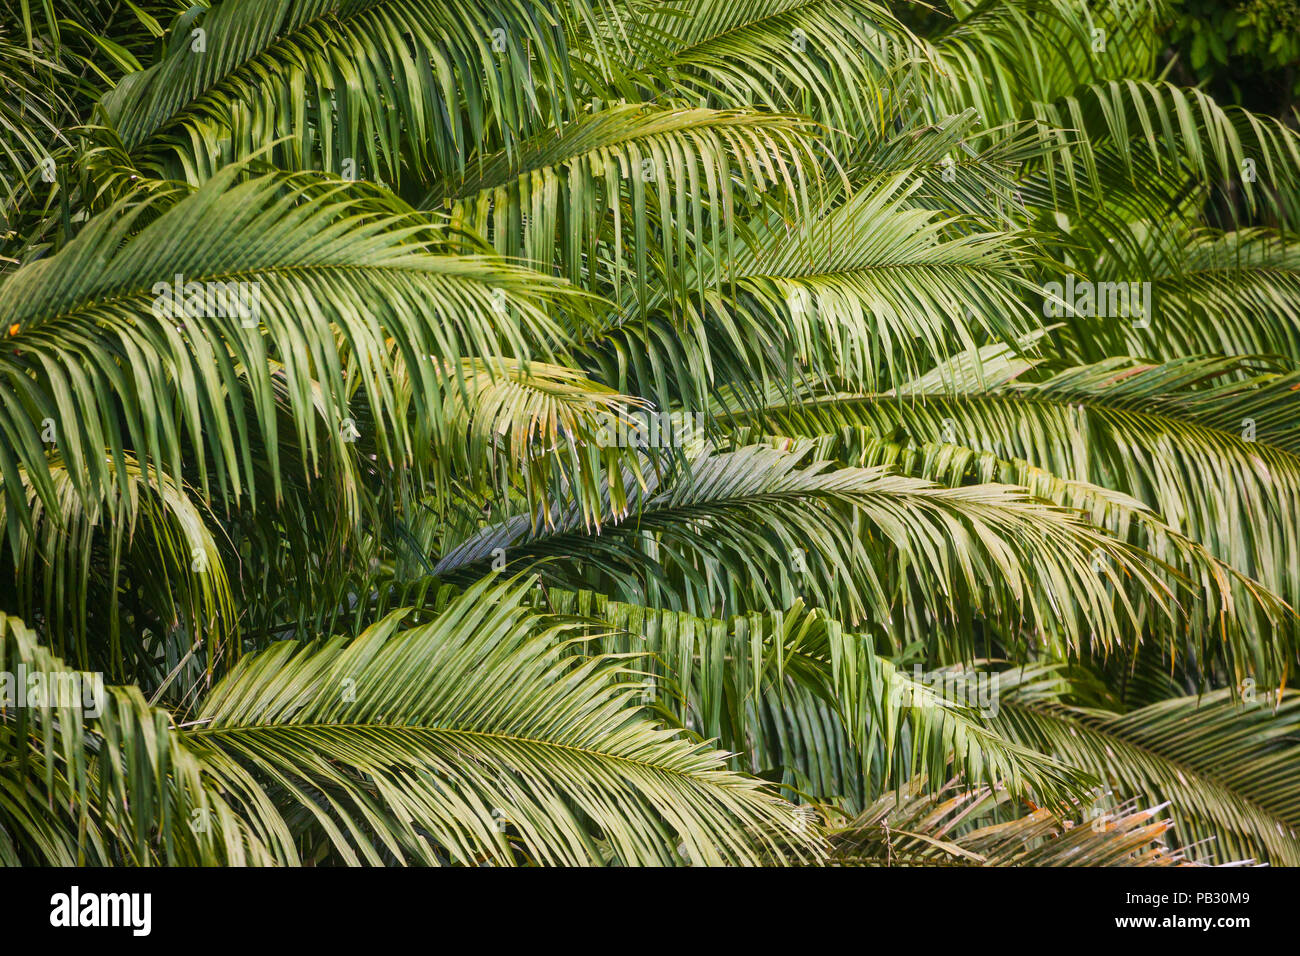 Palm leaves and branches at the lakeside of Gatun lake, Colon province, Republic of Panama. - Stock Image